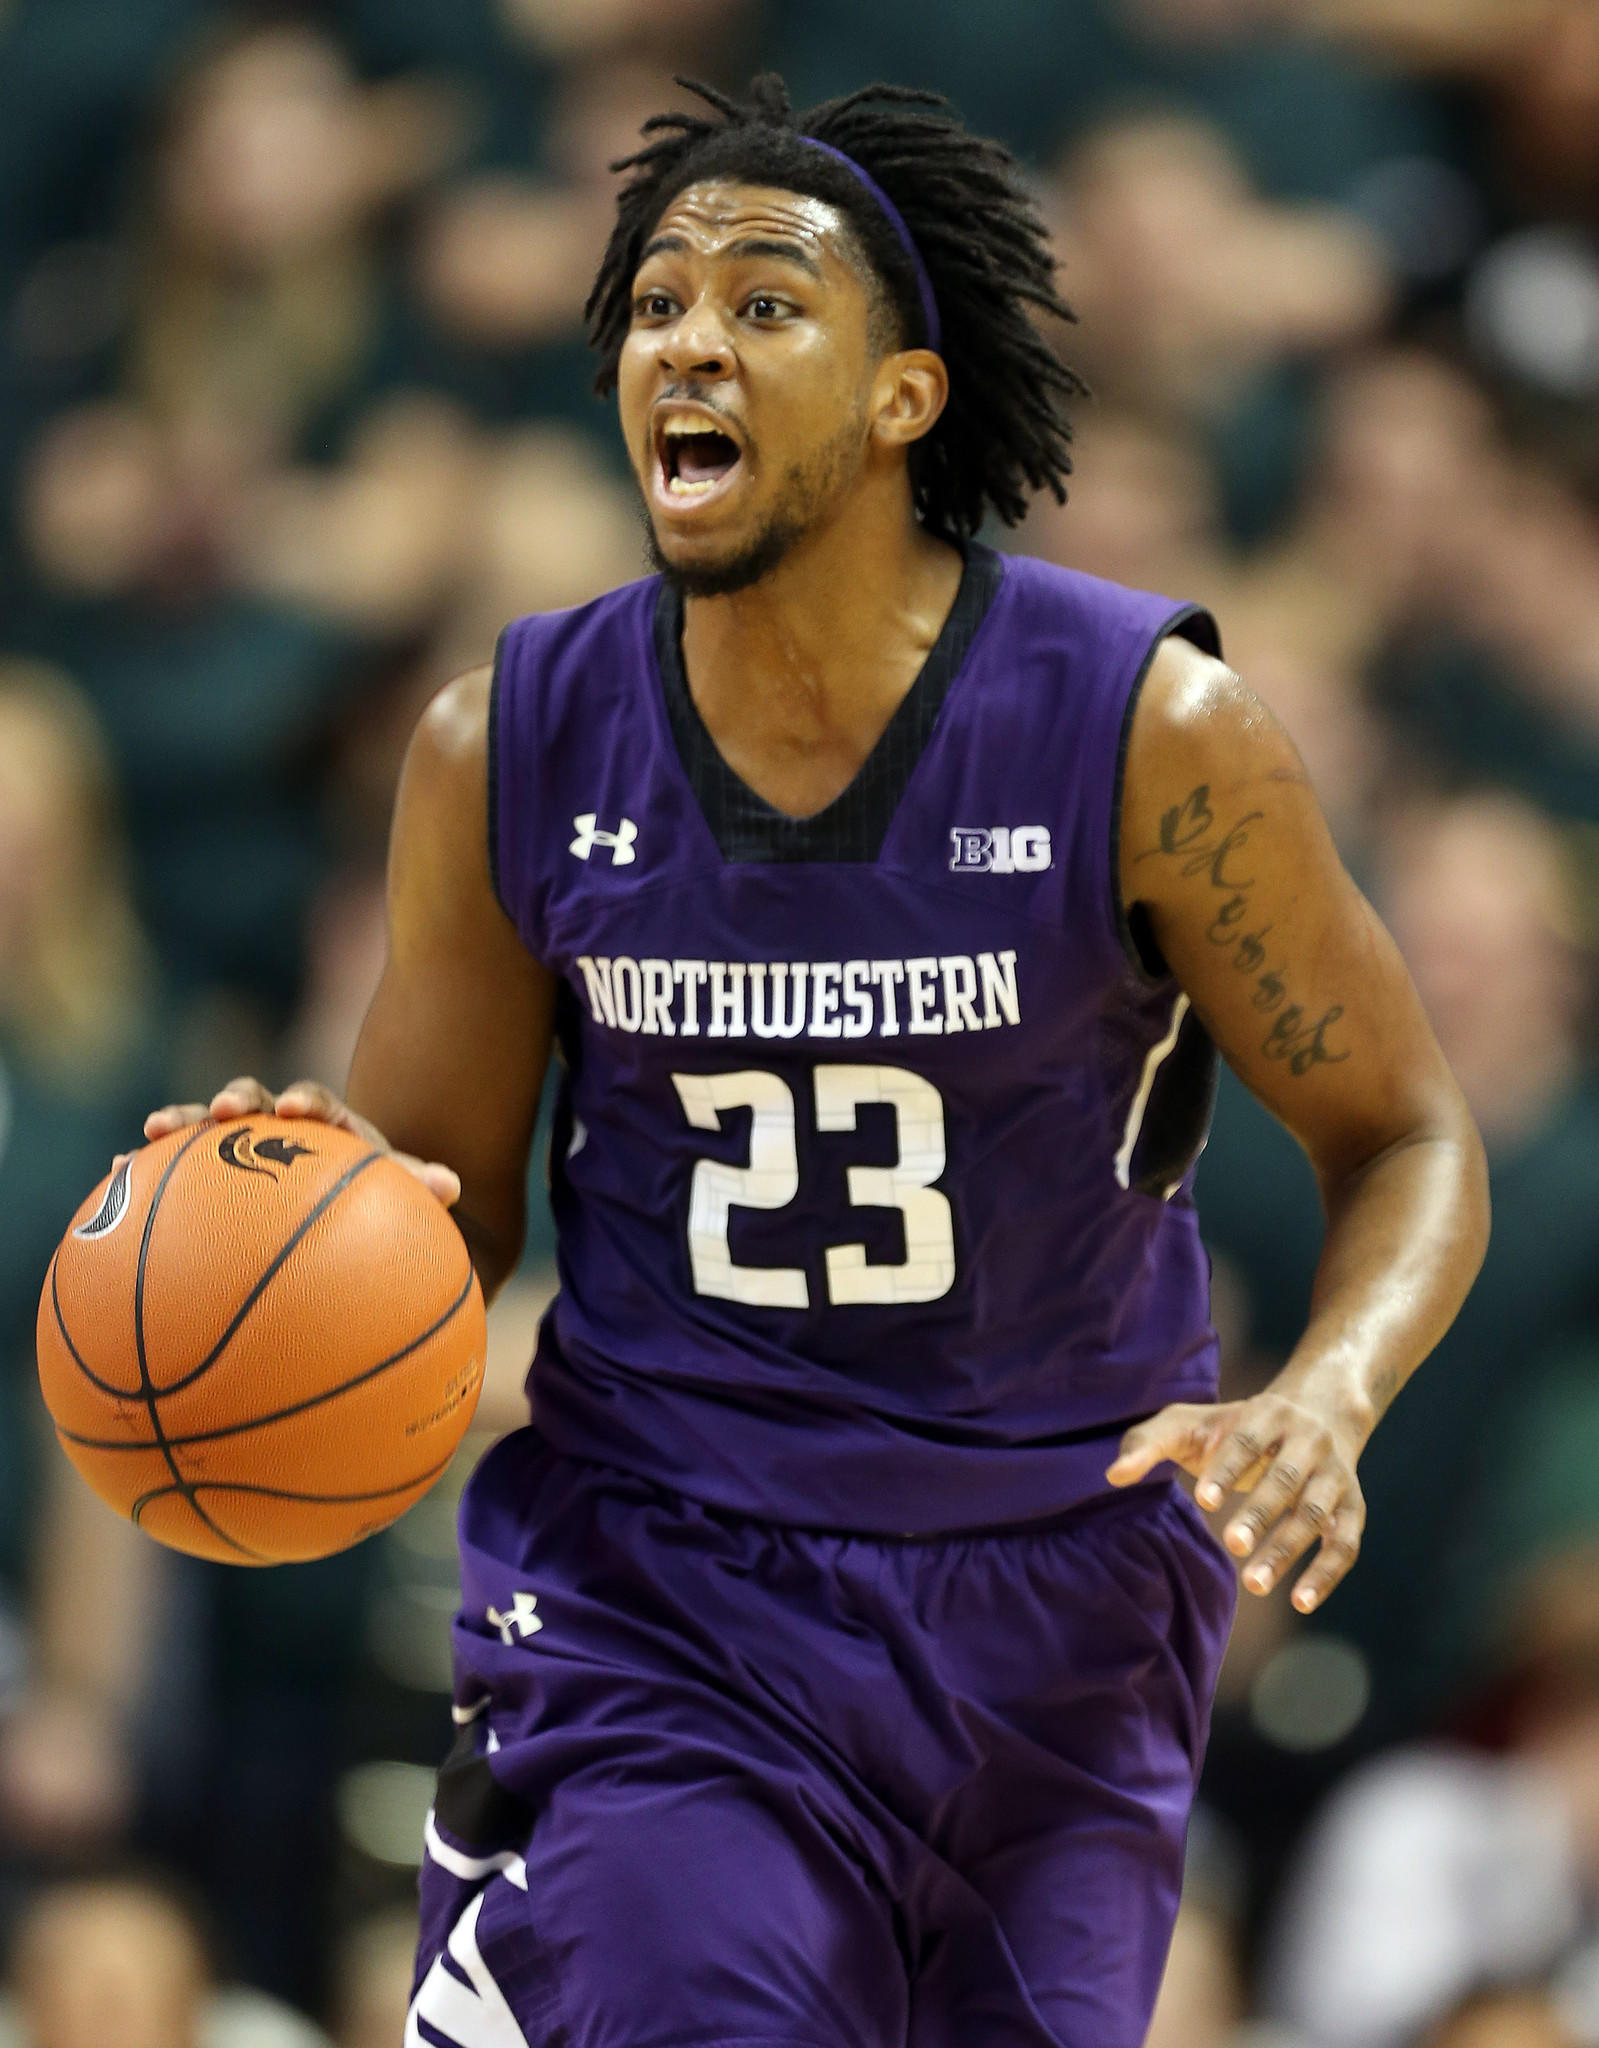 Northwestern guard JerShon Cobb brings the ball up court against Michigan State during a recent game.